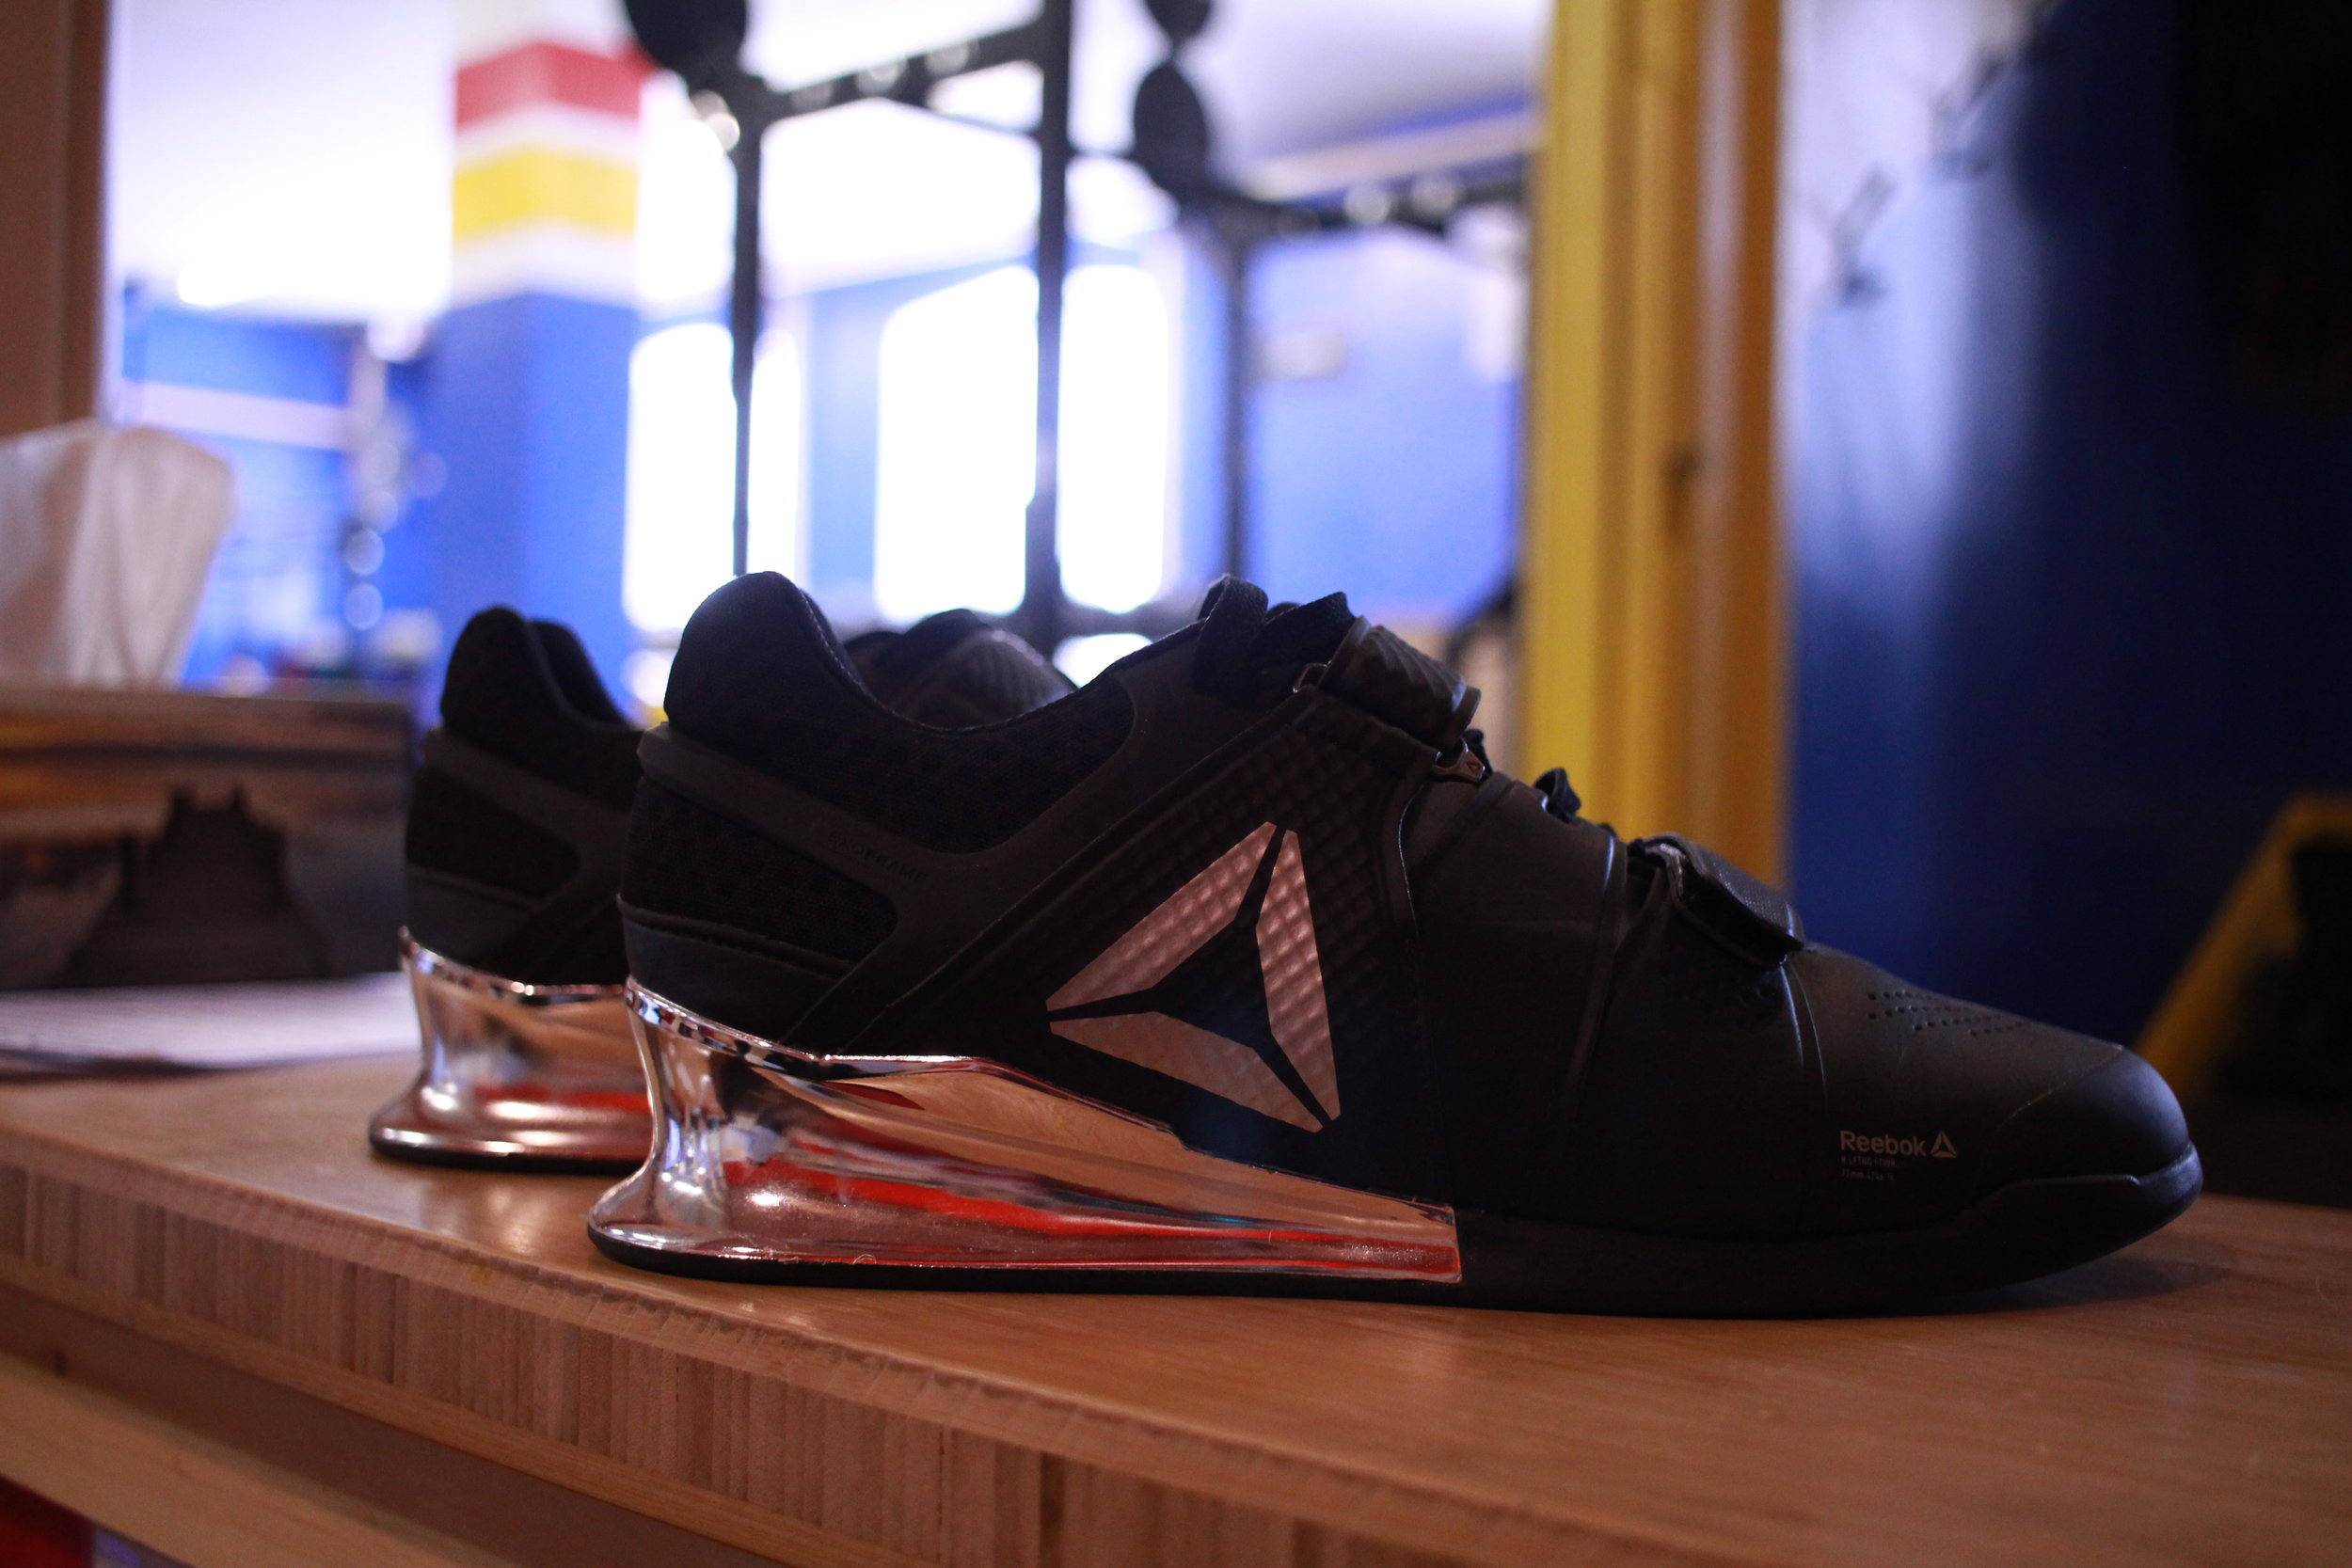 Weightlifting Shoes (LIFTERS)  Regular running and training shoes often have minimal soles. They are built to absorb the force associated with each step as it is applied. When weightlifting (front, back or overhead squatting; performing the Clean and Jerk or the Snatch), you want to be able to transfer more force into the ground, increasing your ability to pull the bar higher or drive out of the bottom position of the squat. Weightlifting shoes are thus designed with a still sole and a raised heel. The raised heel assists in the range of motion of the ankle: with the ankle slightly raised, it is easier to sit back into the squat rather than leaning forward.